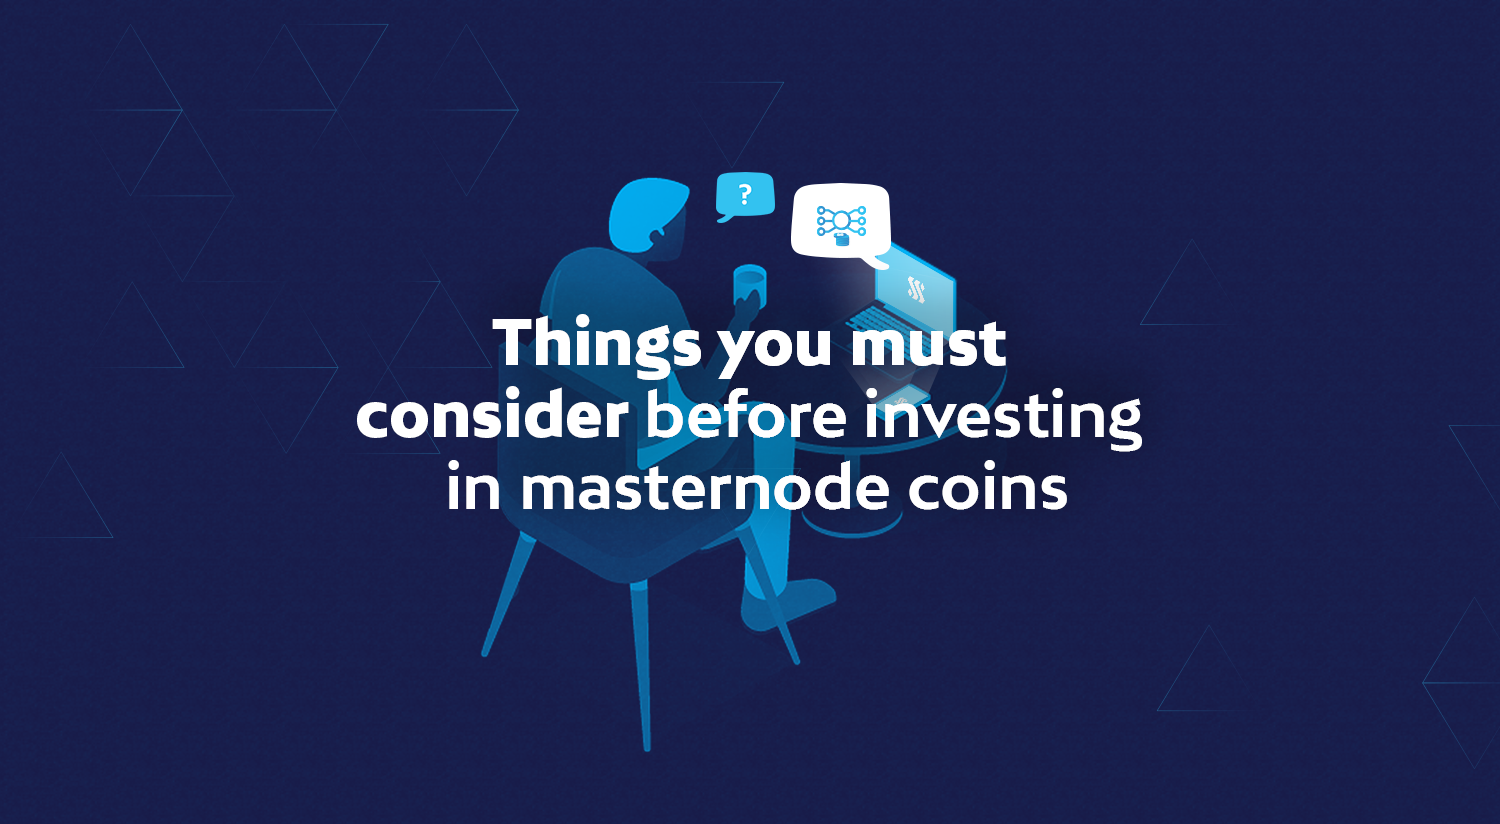 Things you must consider before investing in masternode coins